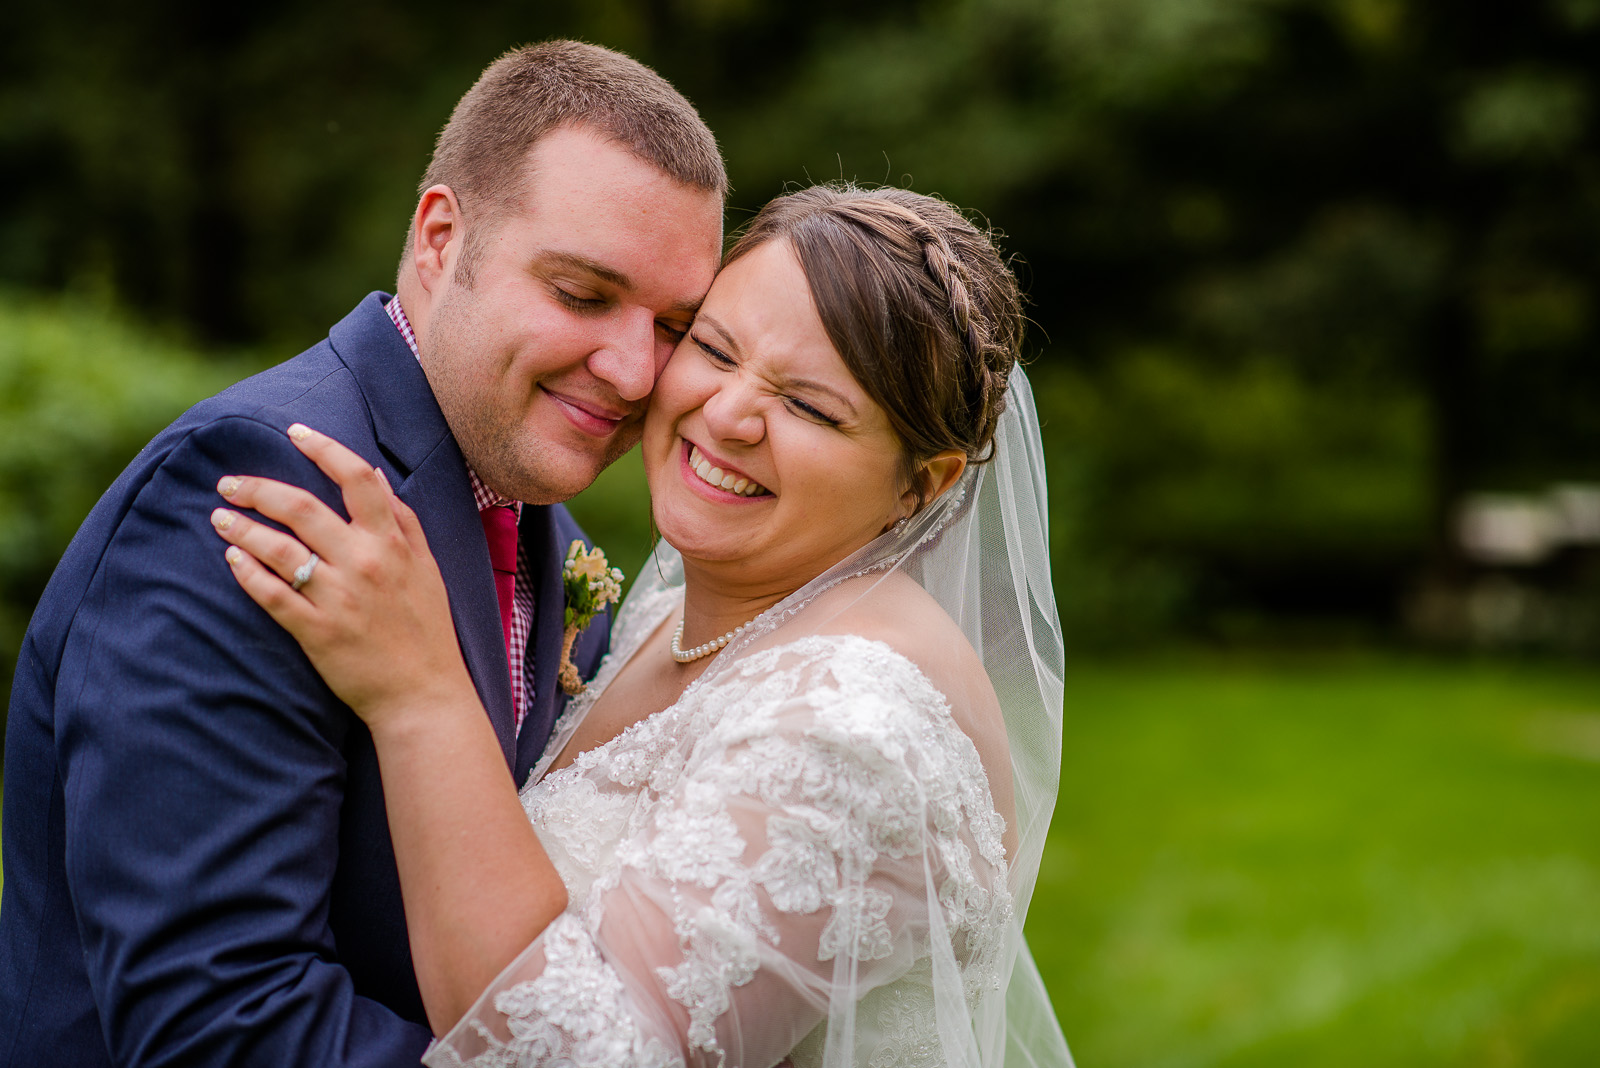 Eric_and_Christy_Photography_Blog_2018_Portraits-21